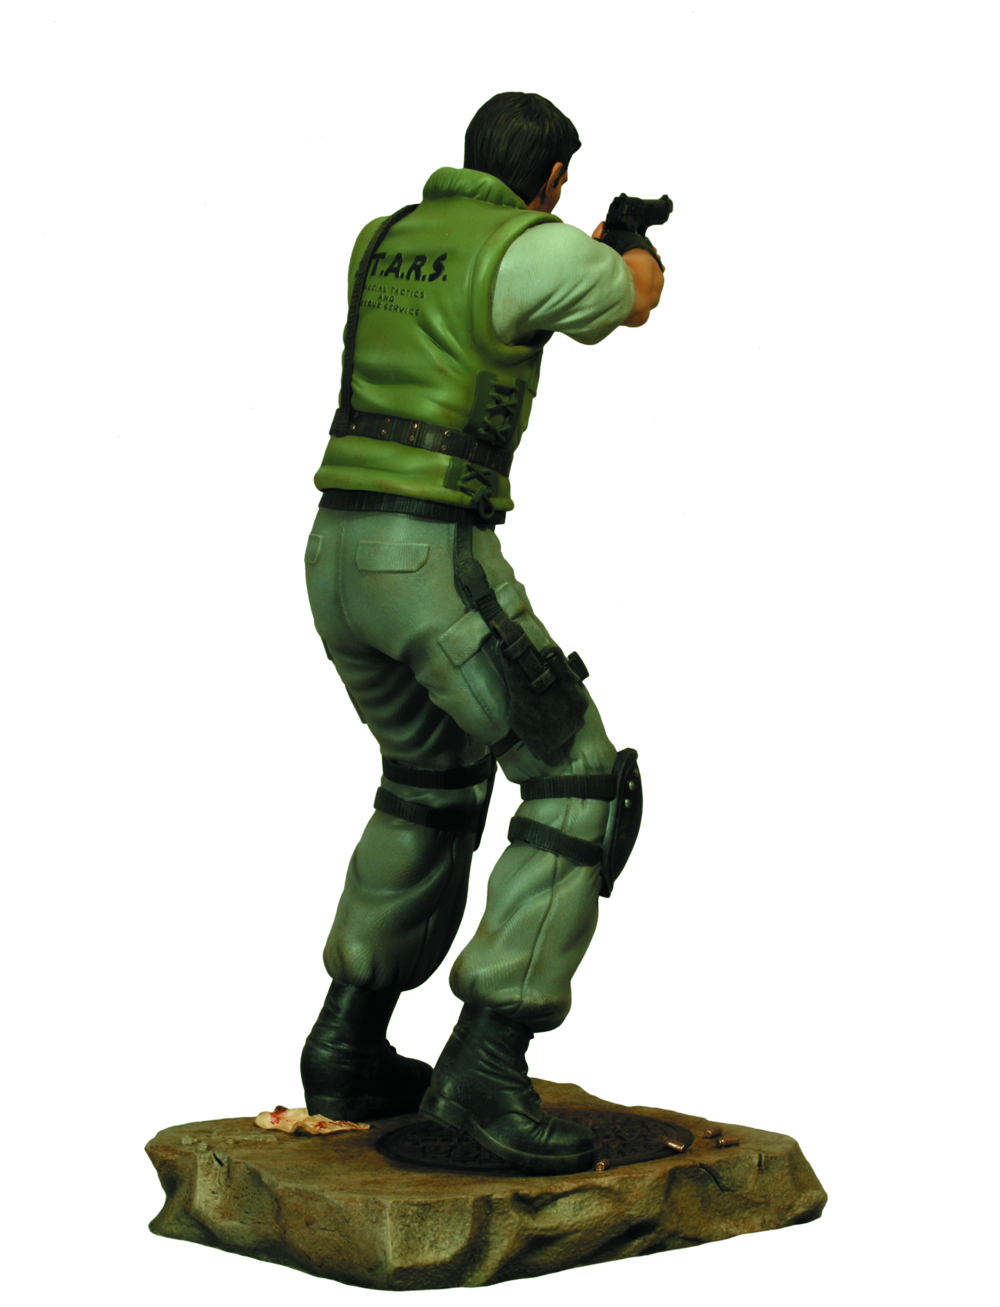 RESIDENT EVIL CHRIS REDFIELD 1/6 SCALE STATUE